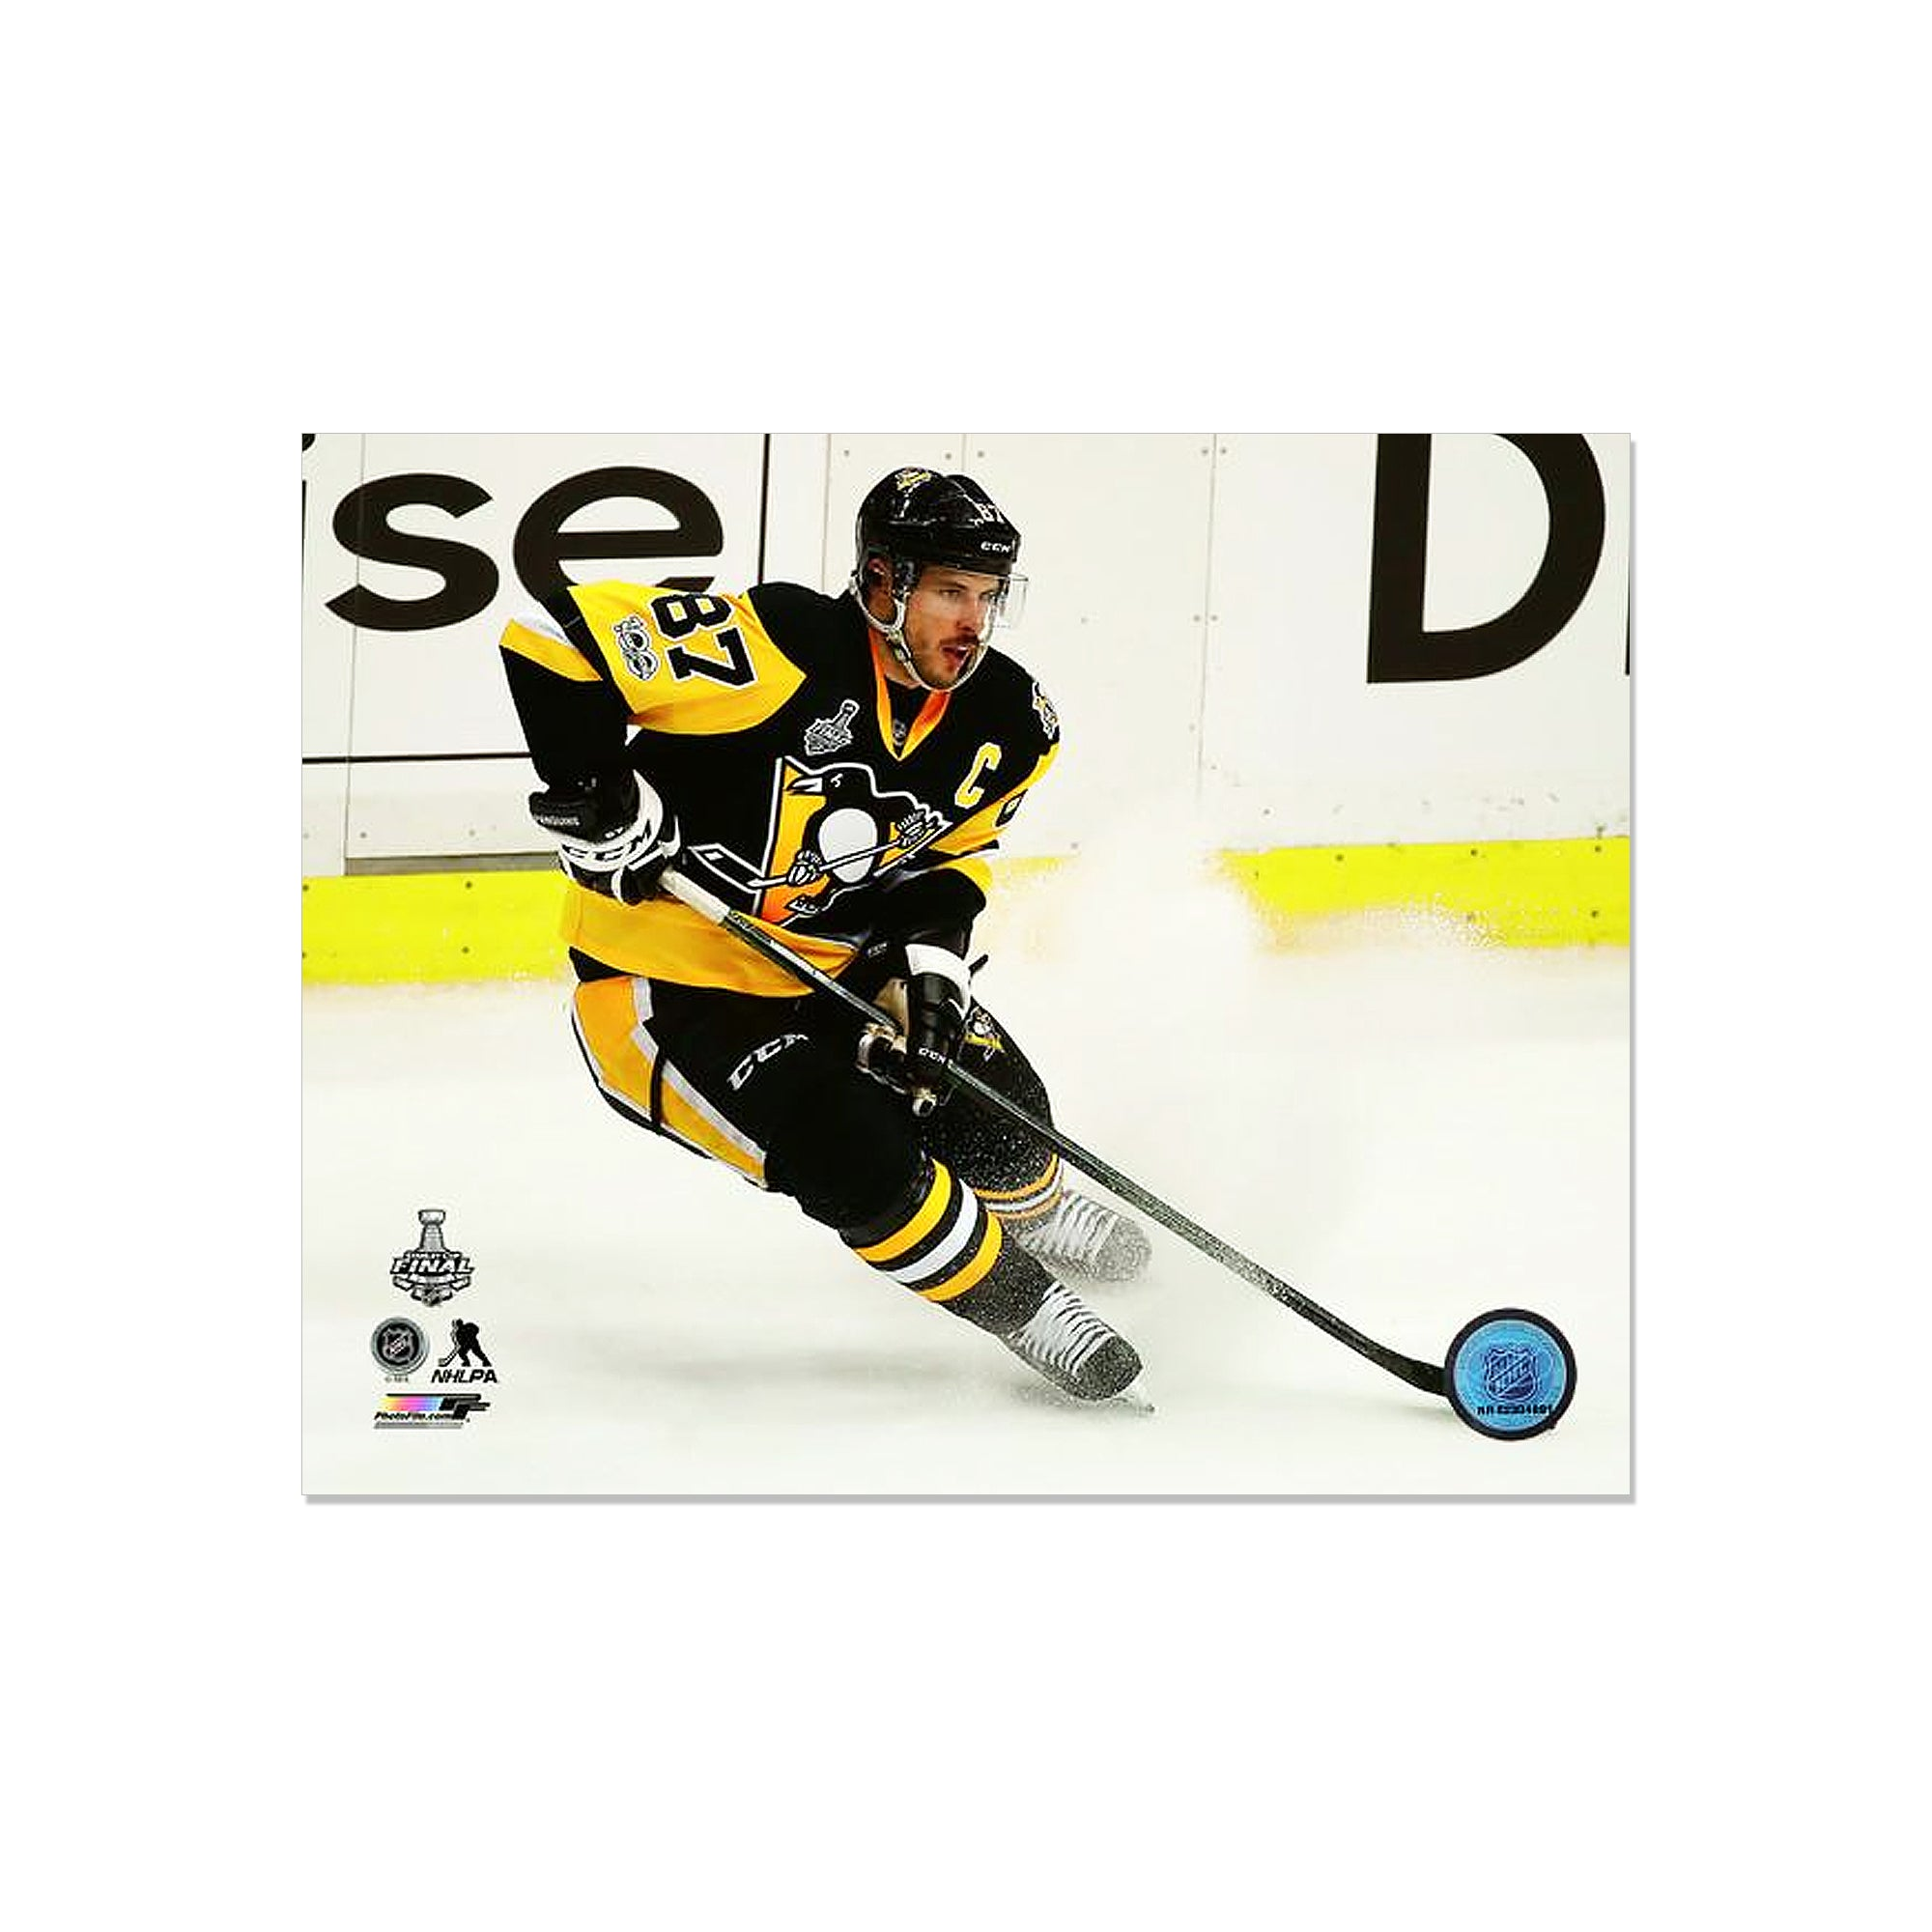 finest selection 7bfcb c183b Action Stop Photographs Sidney Crosby Pittsburgh Penguins ...